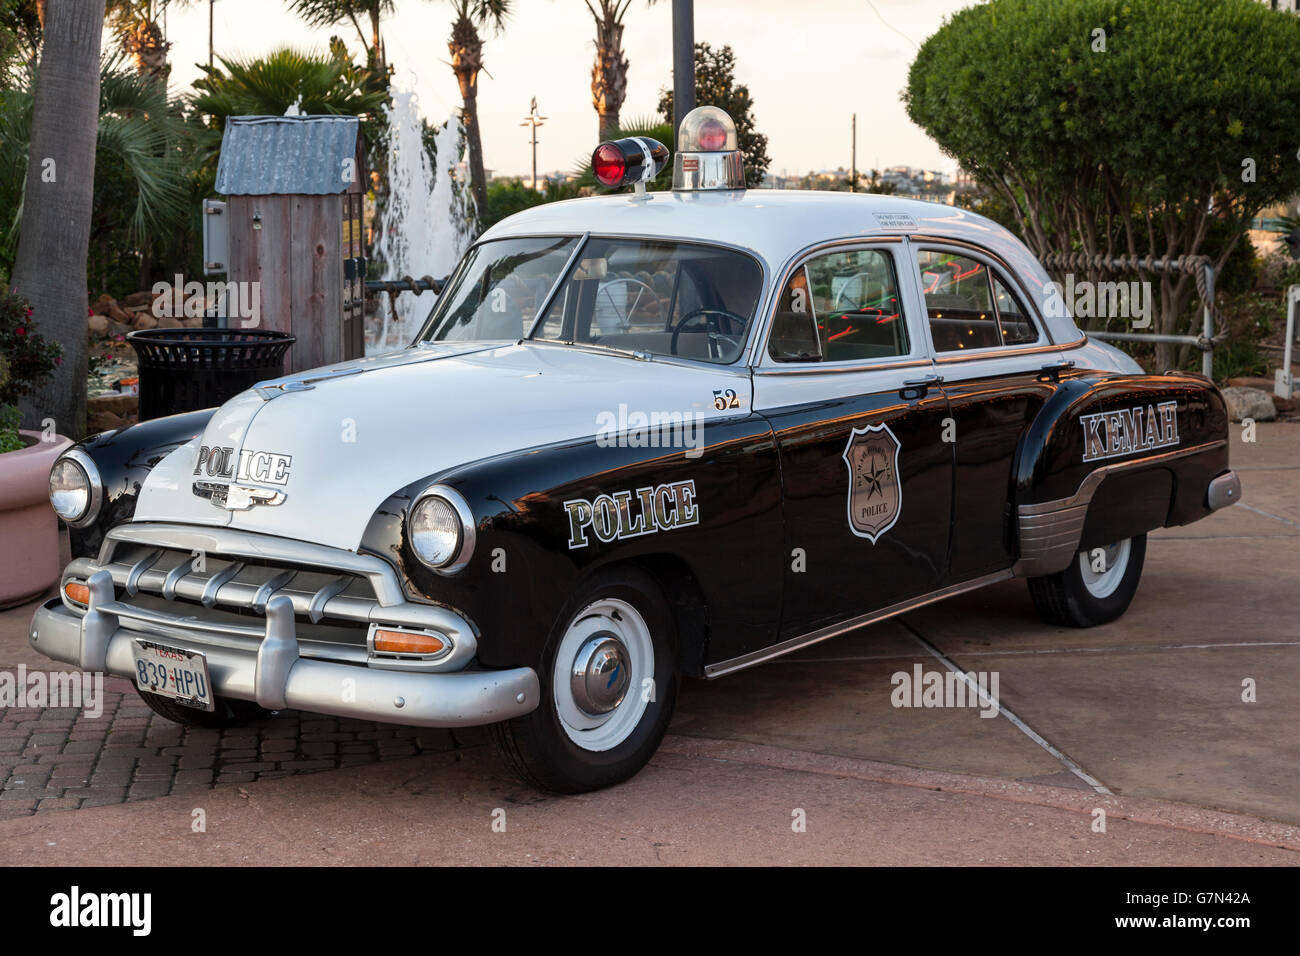 1952 Chevy Deluxe 4 Door Police Car Wiring Diagrams 1949 Styleline Chevrolet Stock Photos Rh Alamy Com Sedan